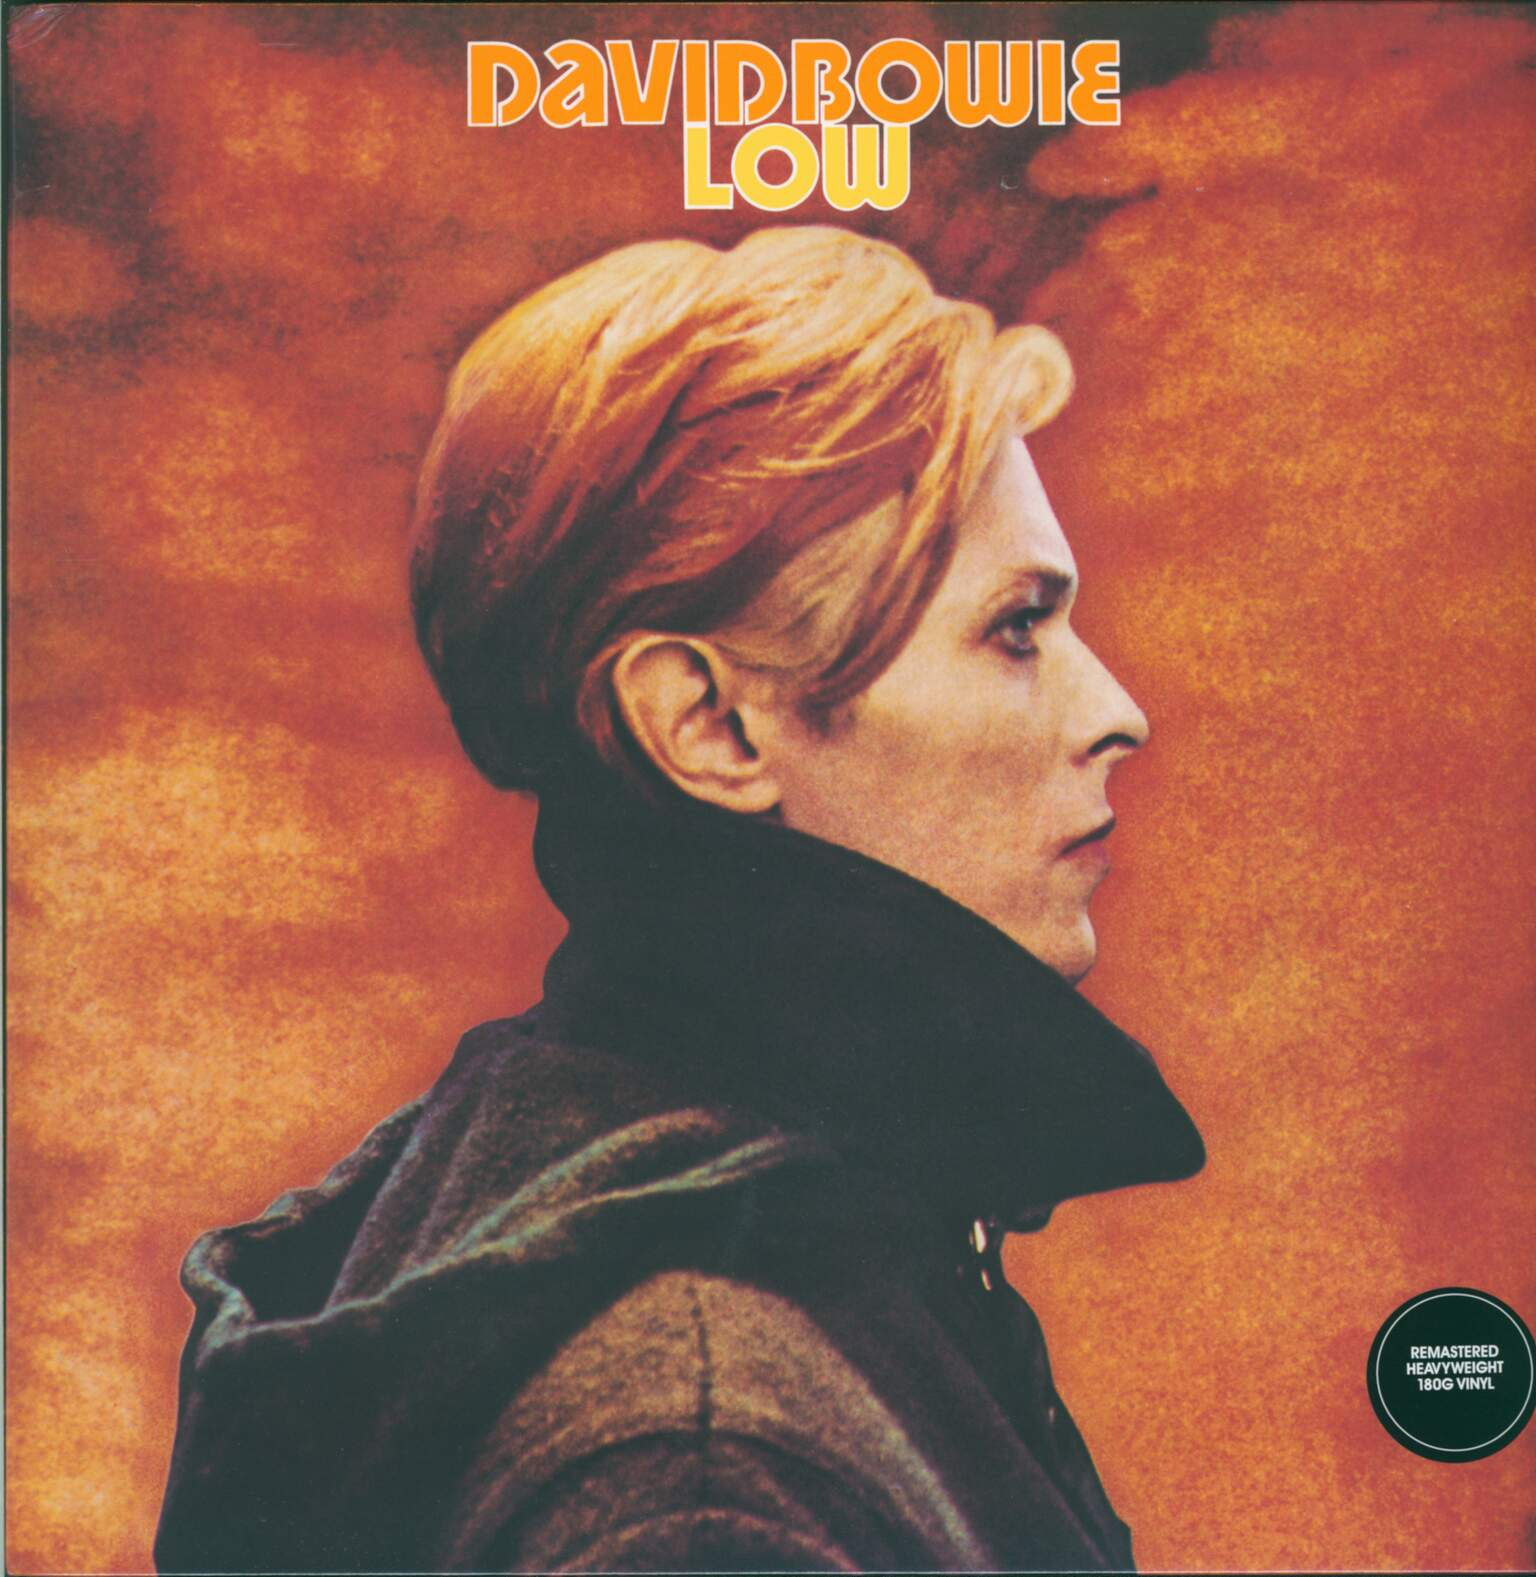 David Bowie: Low, 1×LP (Vinyl)